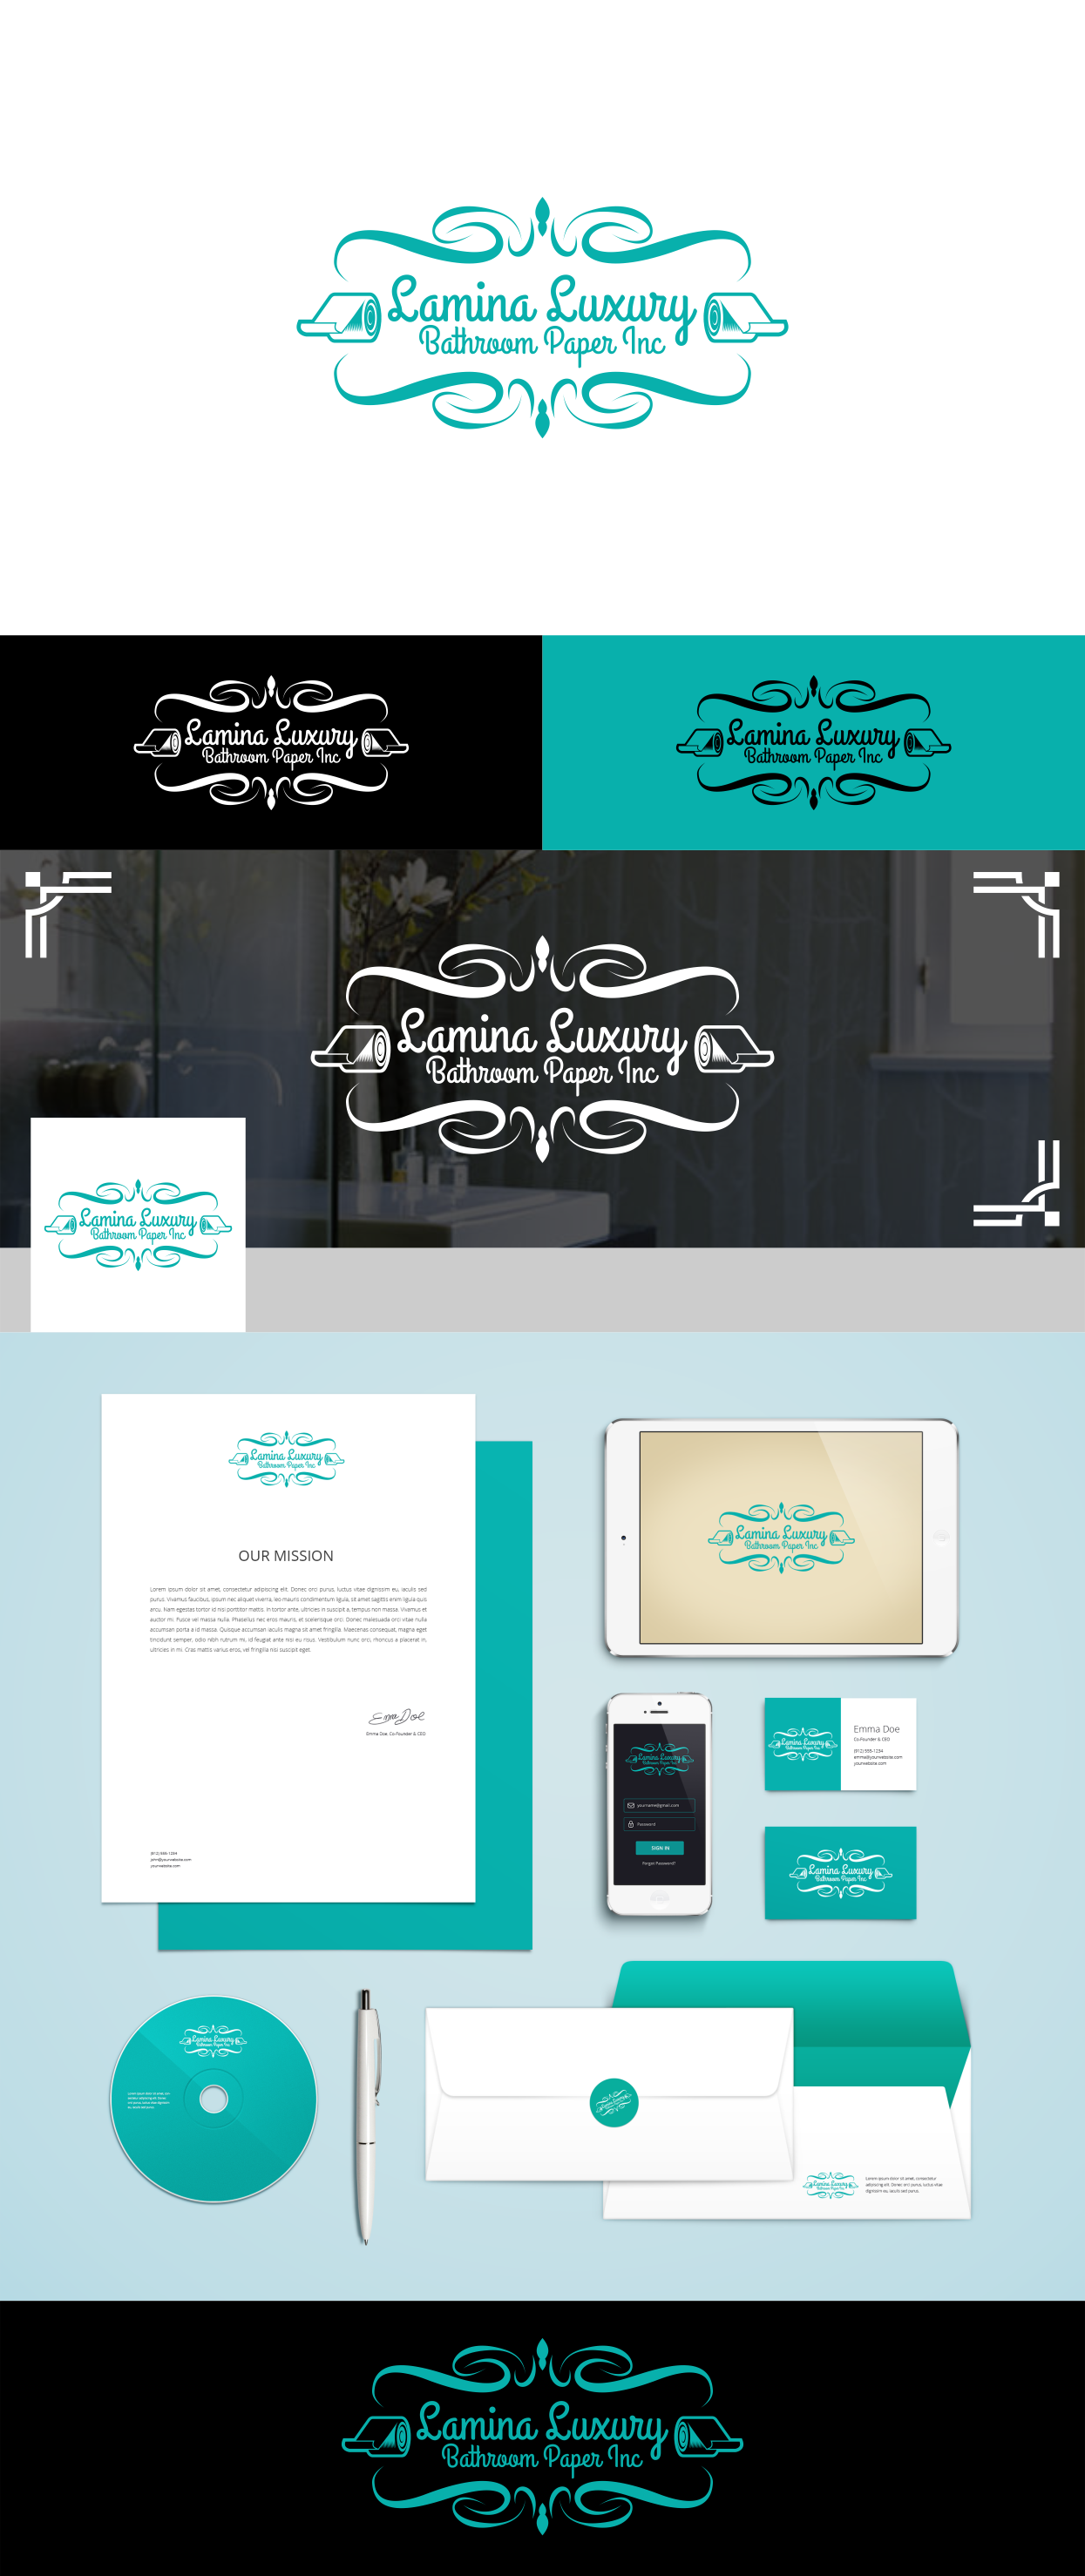 Branding for a bathroom paper manufacturing company